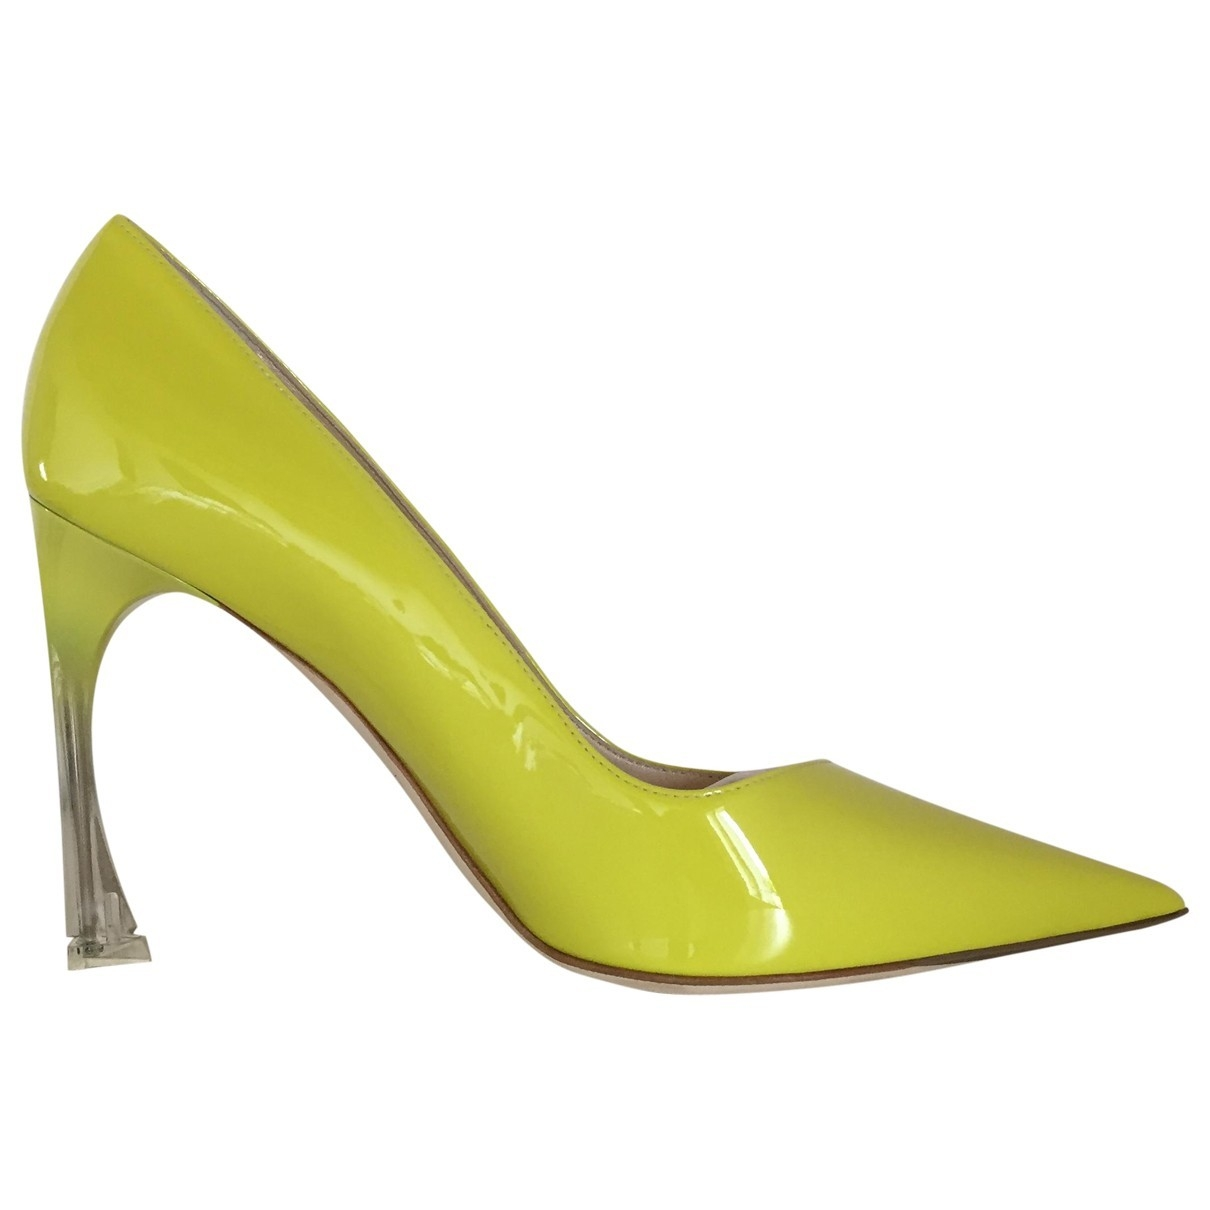 Dior Dior D-Stiletto Yellow Patent leather Heels for Women 38 EU